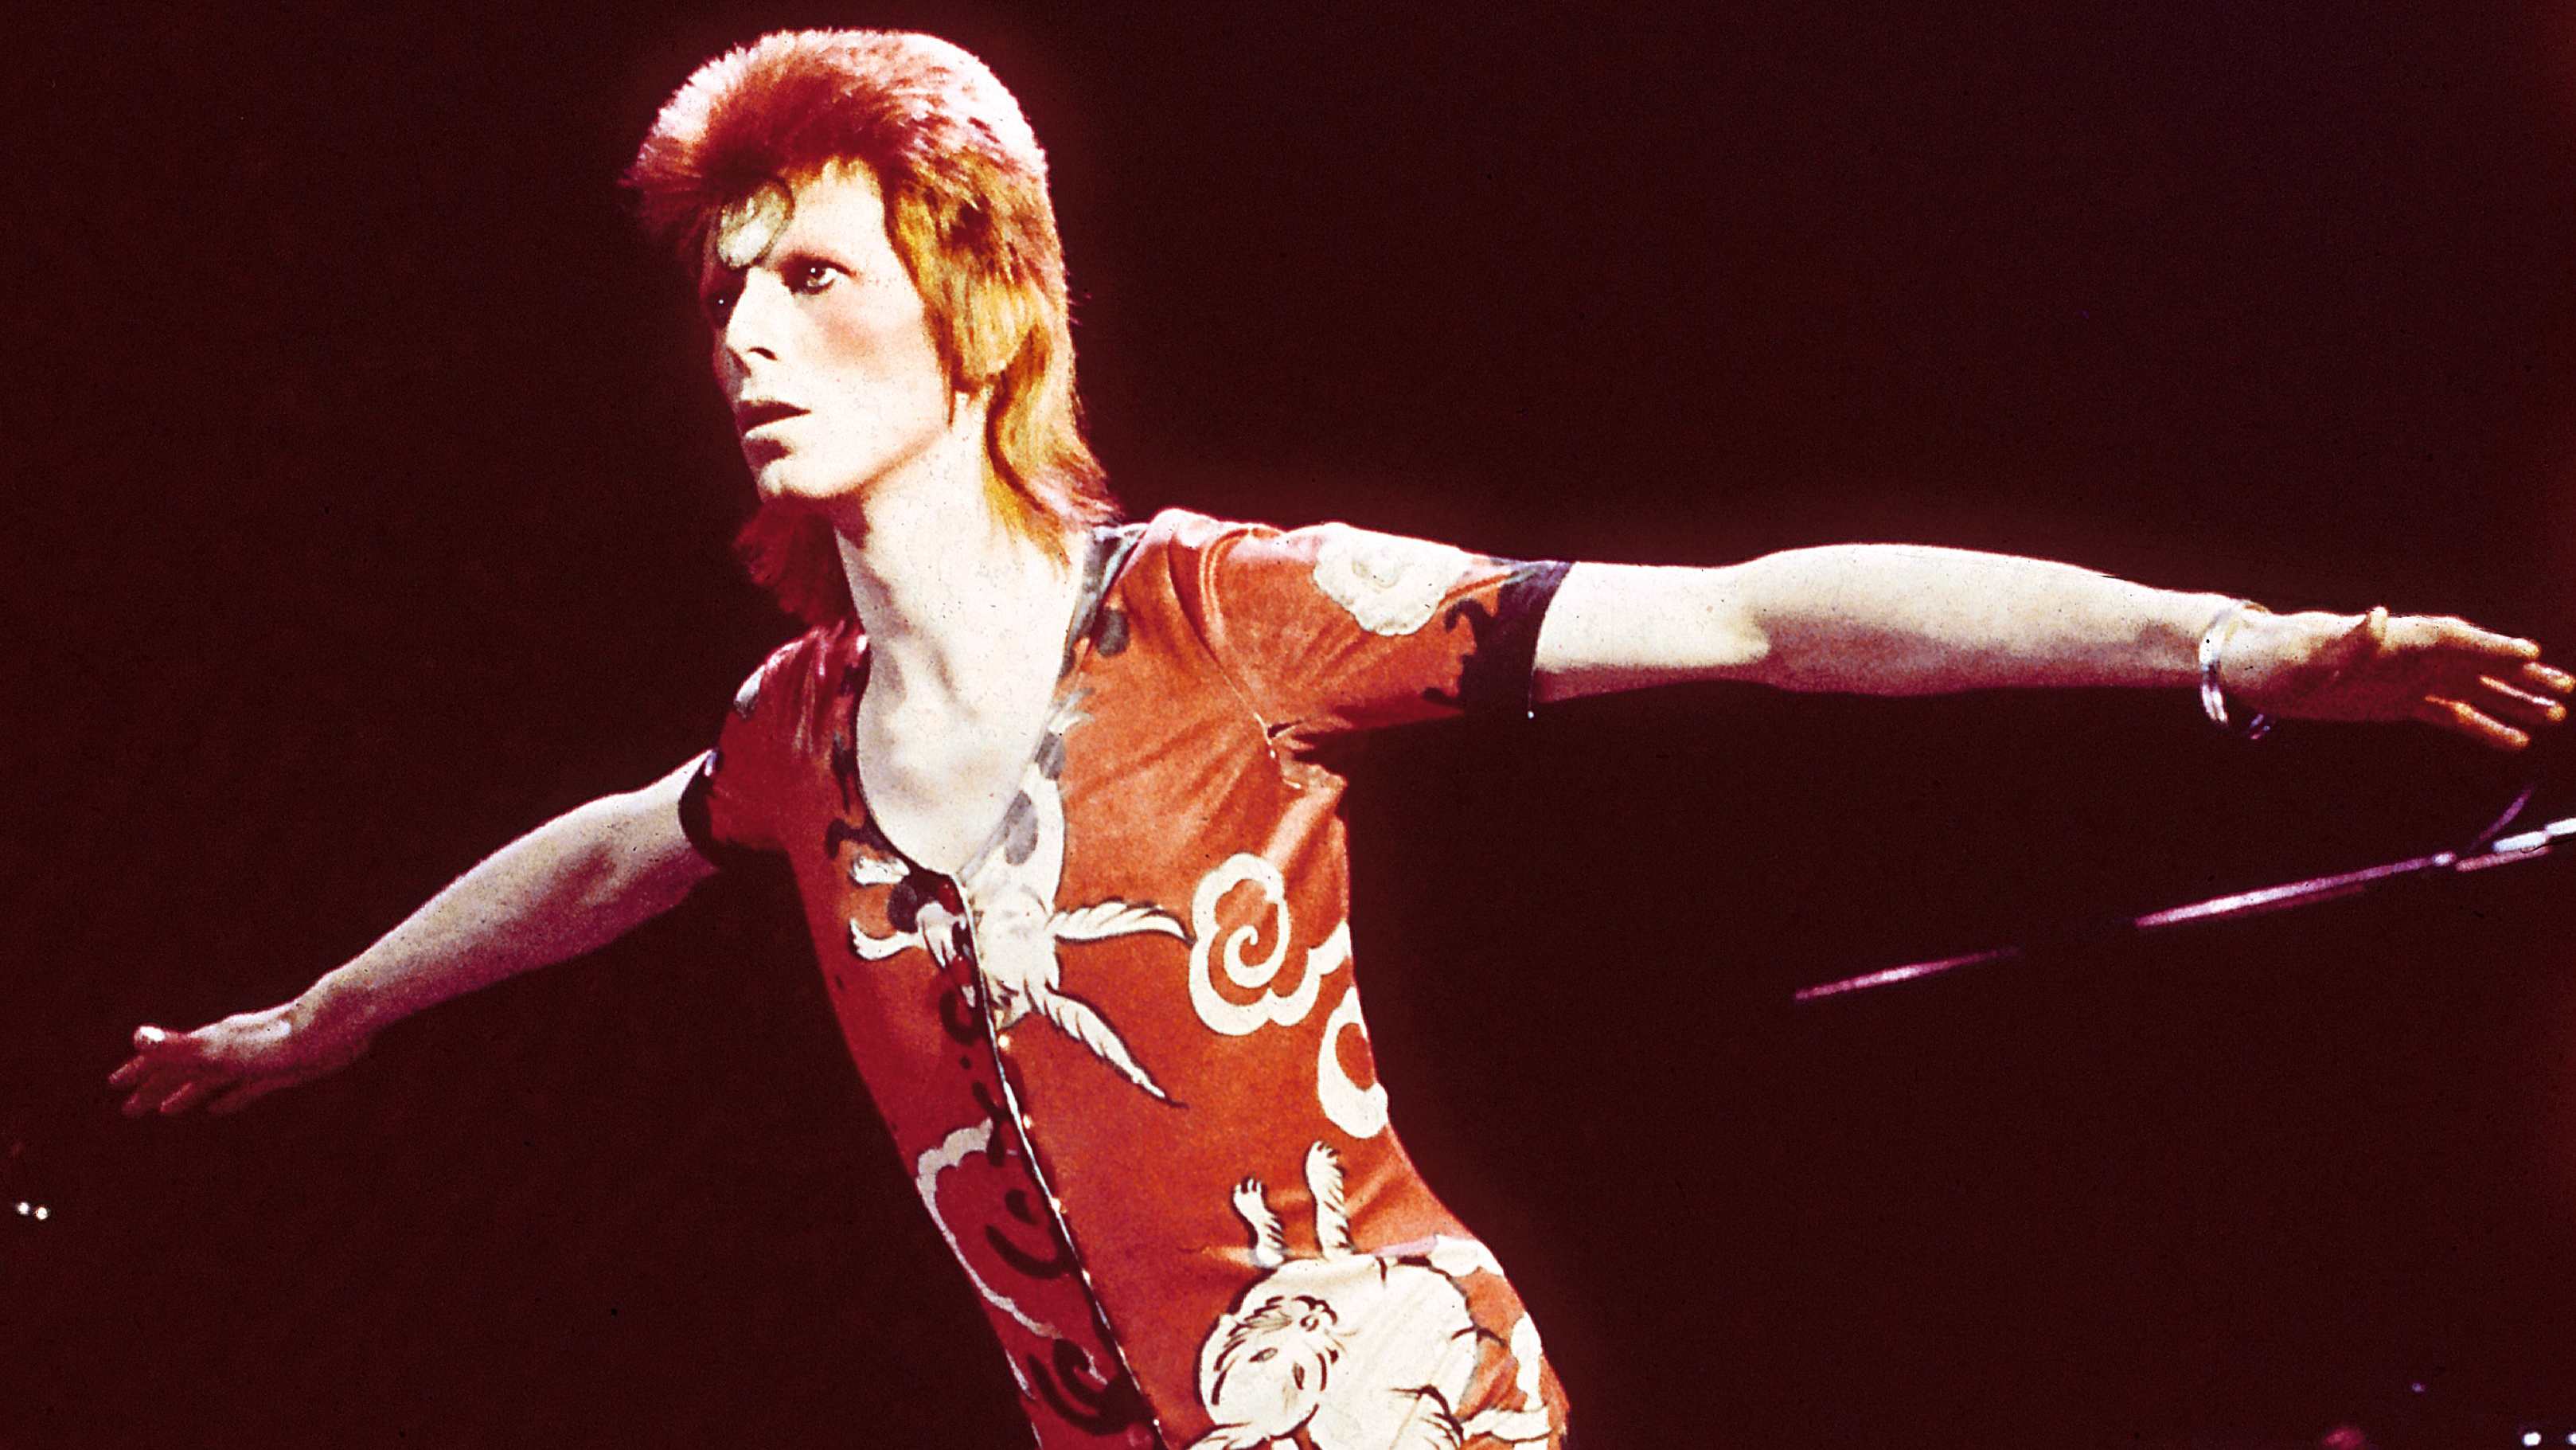 david bowie wallpapers high resolution and quality download